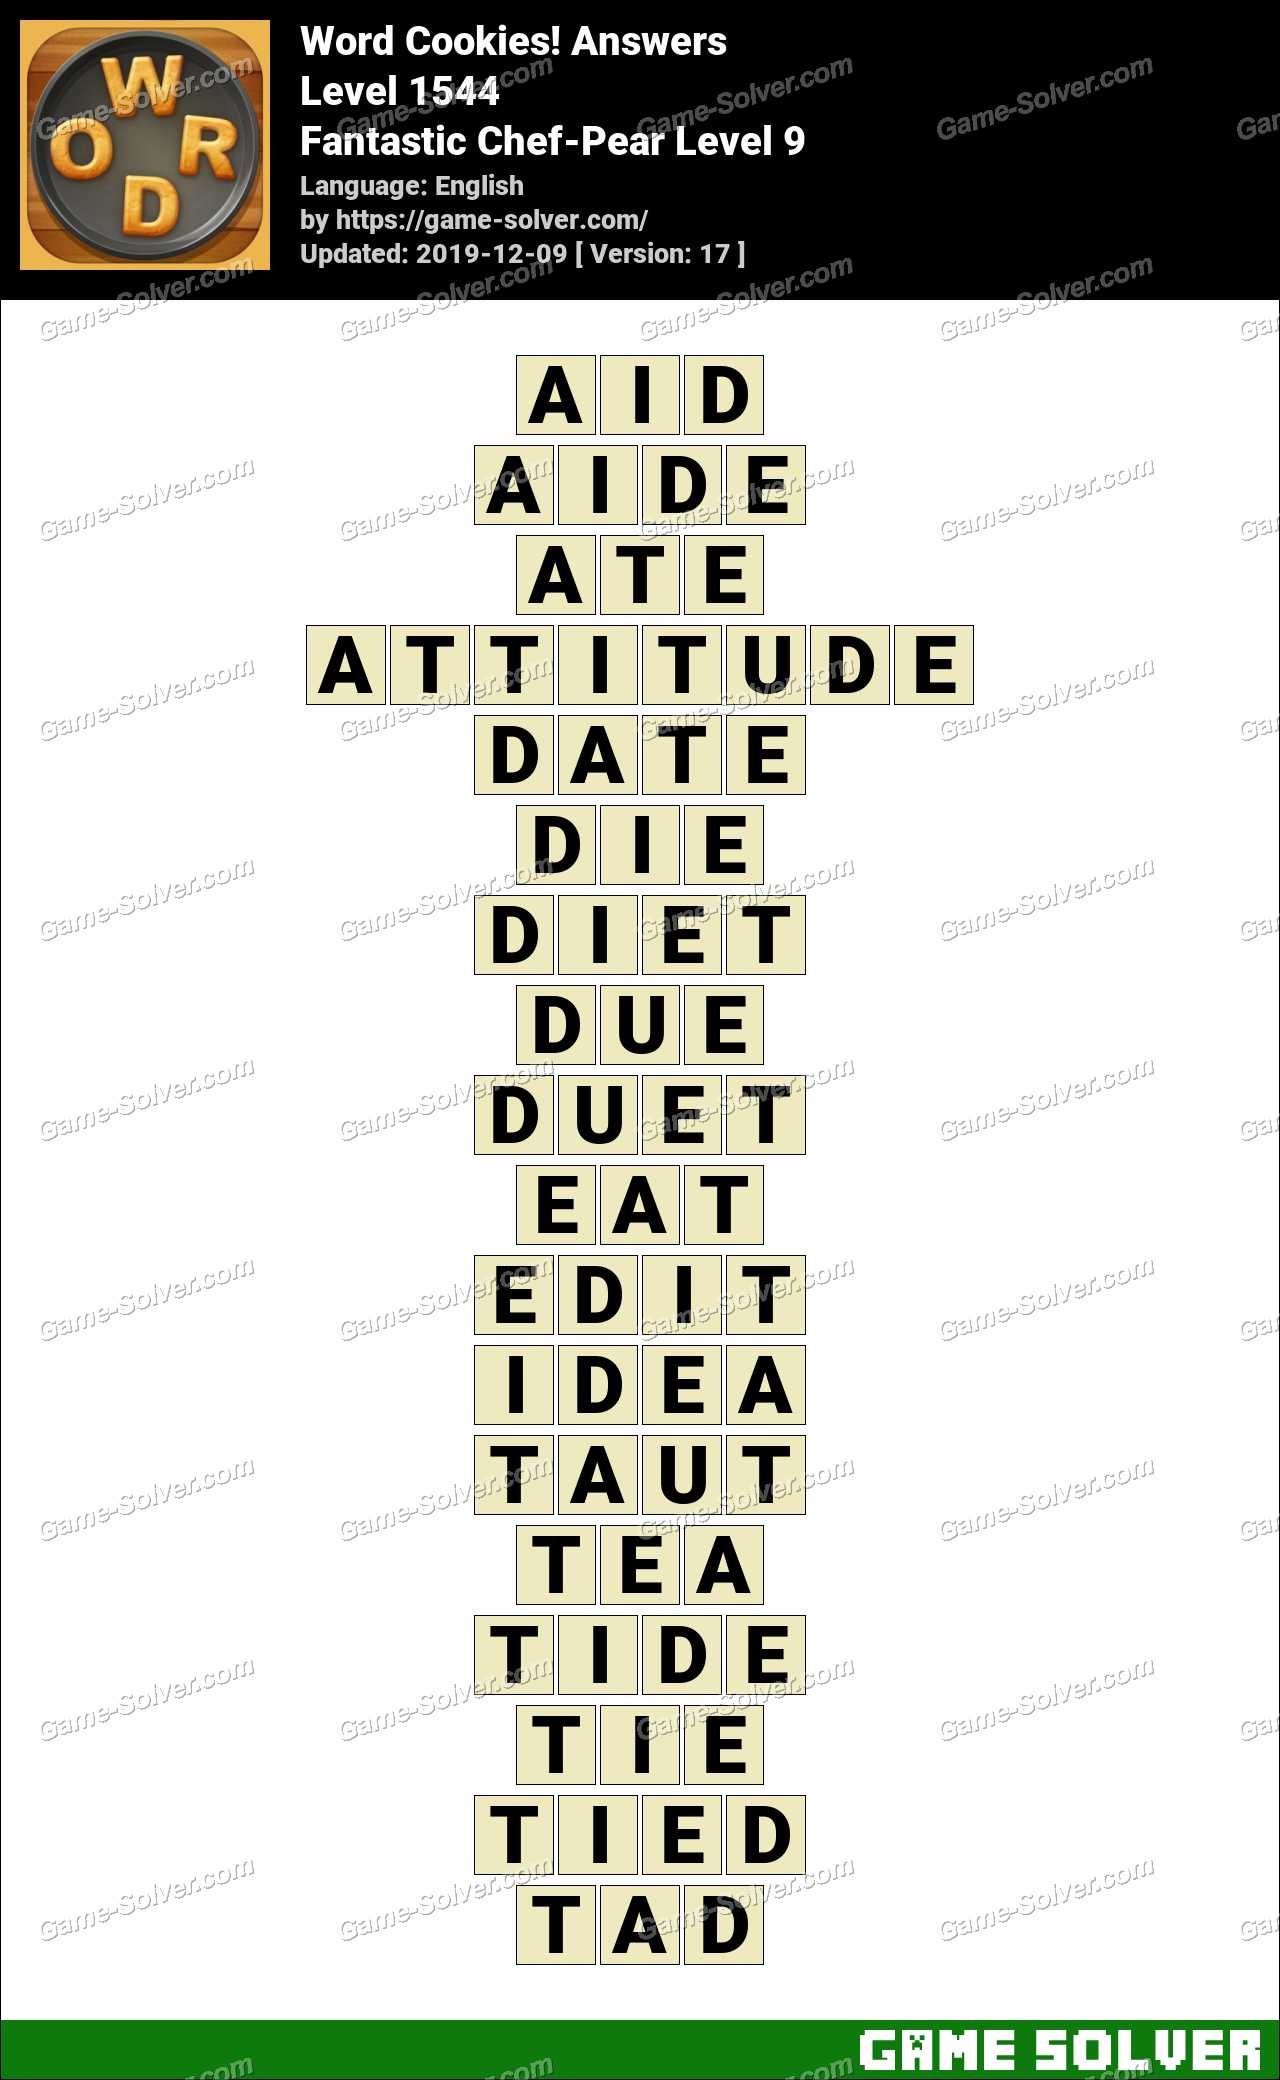 Word Cookies Fantastic Chef-Pear Level 9 Answers